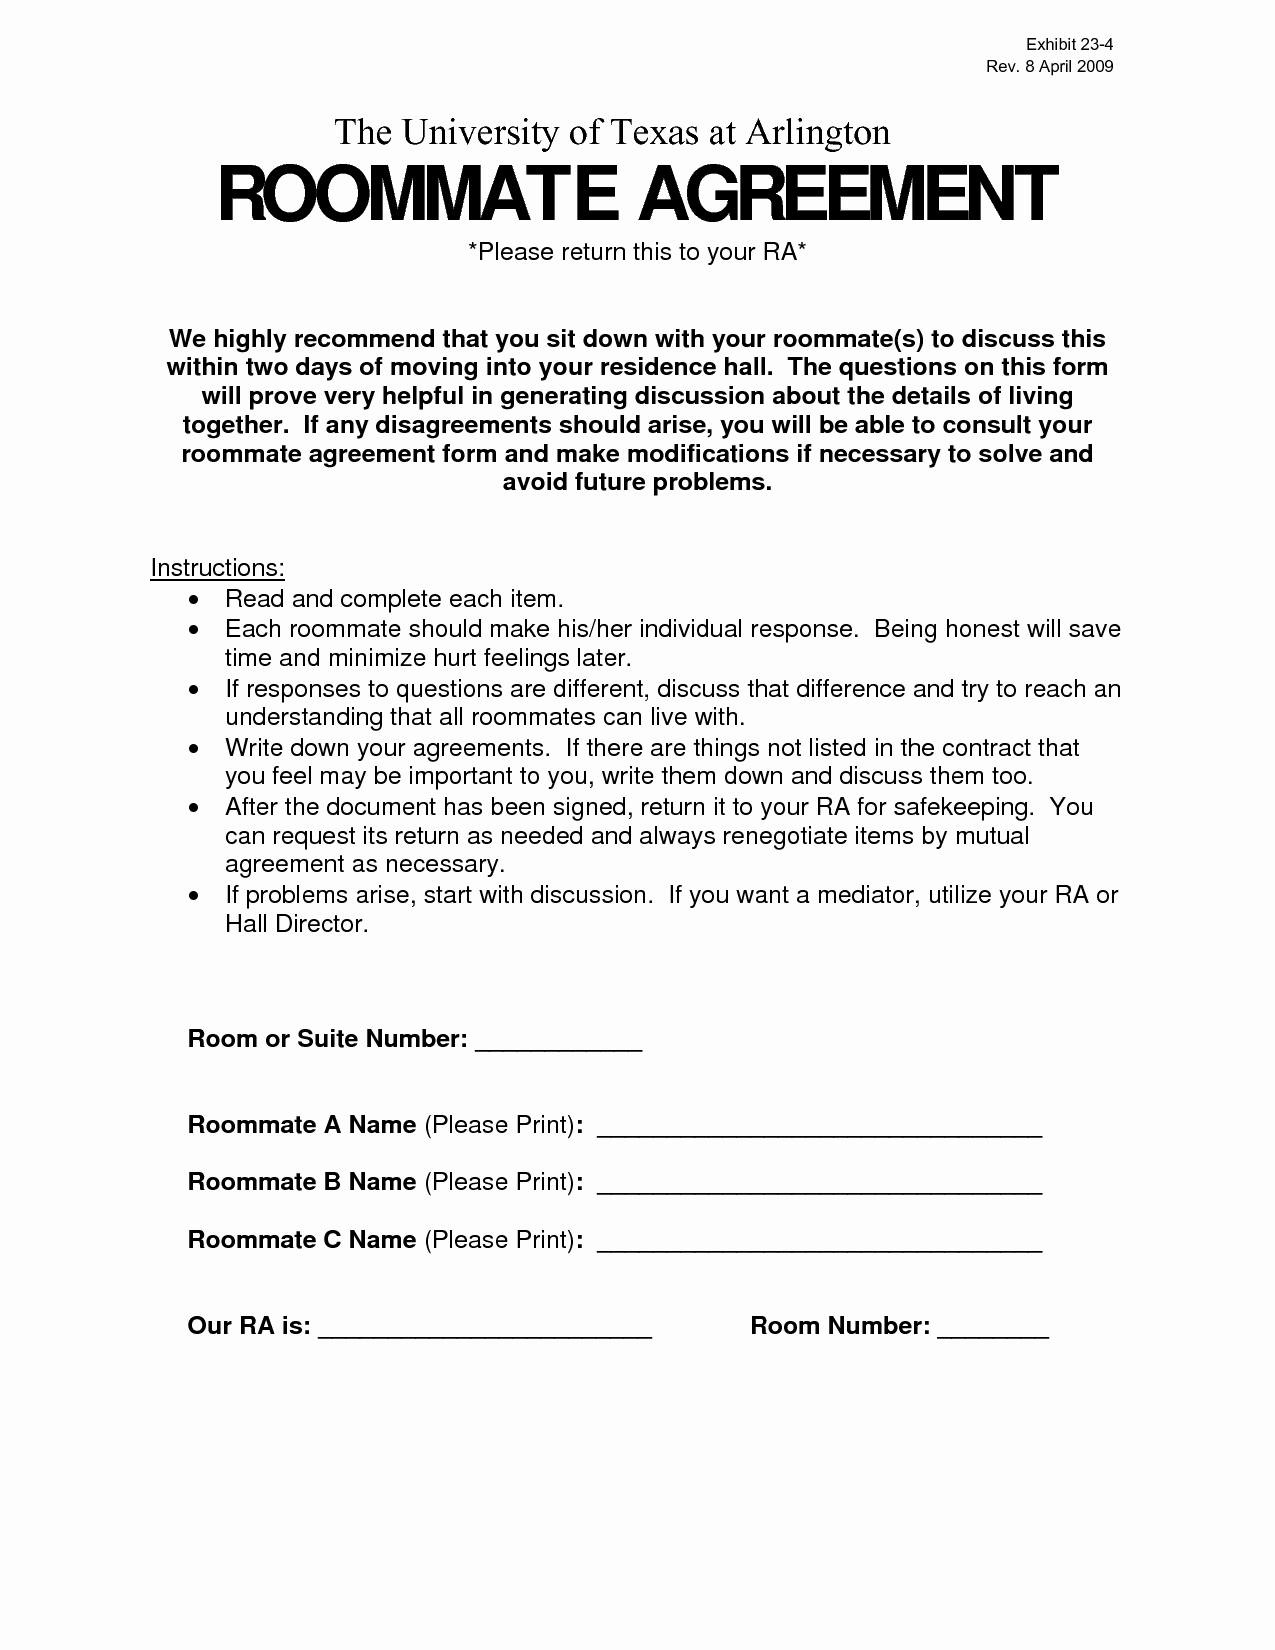 Roommate Agreement Ideas Best Of Delighted Roommate Agreement